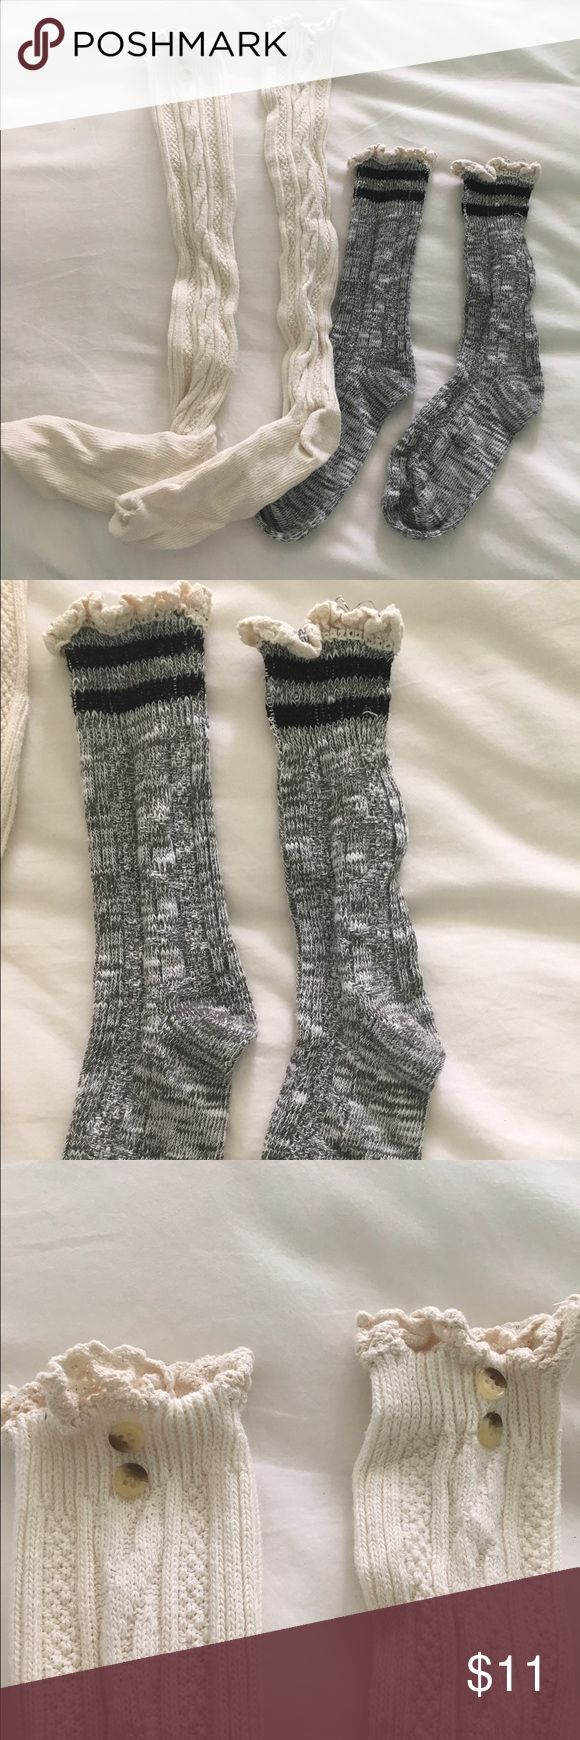 Over the knee boot socks One pair of over the knee boot socks with lace and button and one pair of ankle socks with lace, great condition never worn Other